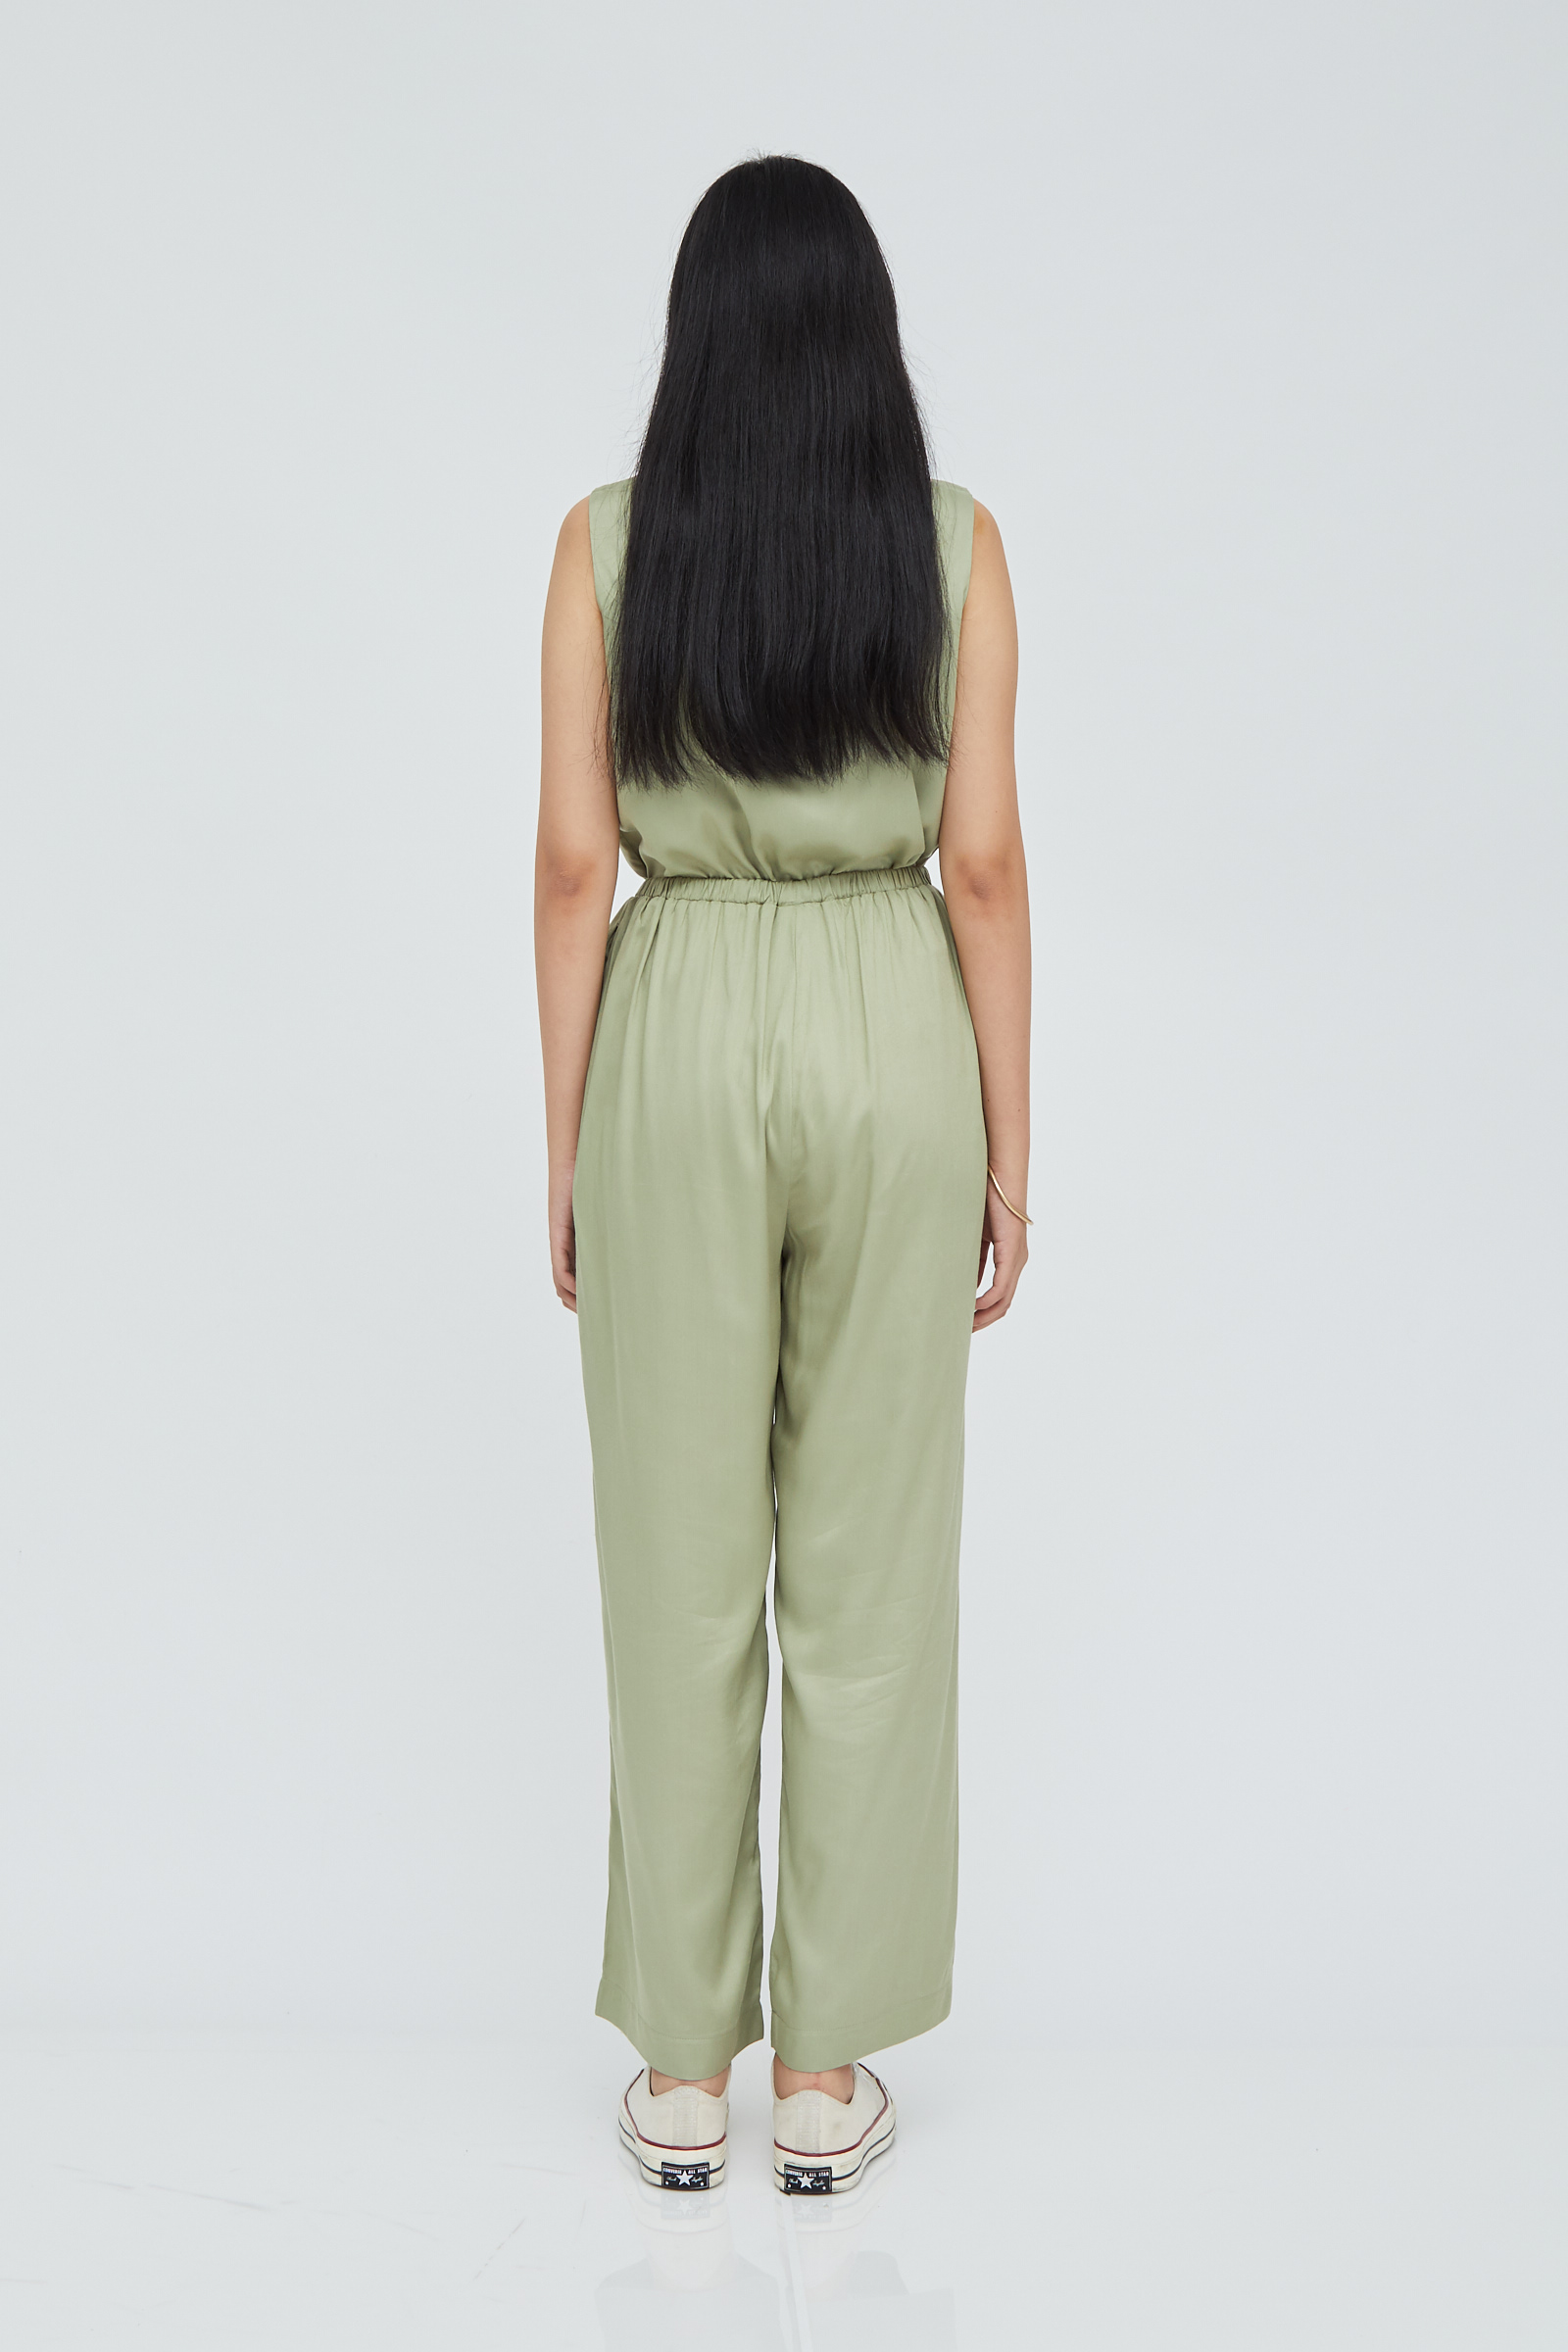 Shopatvelvet Boulevard Pants in Sage